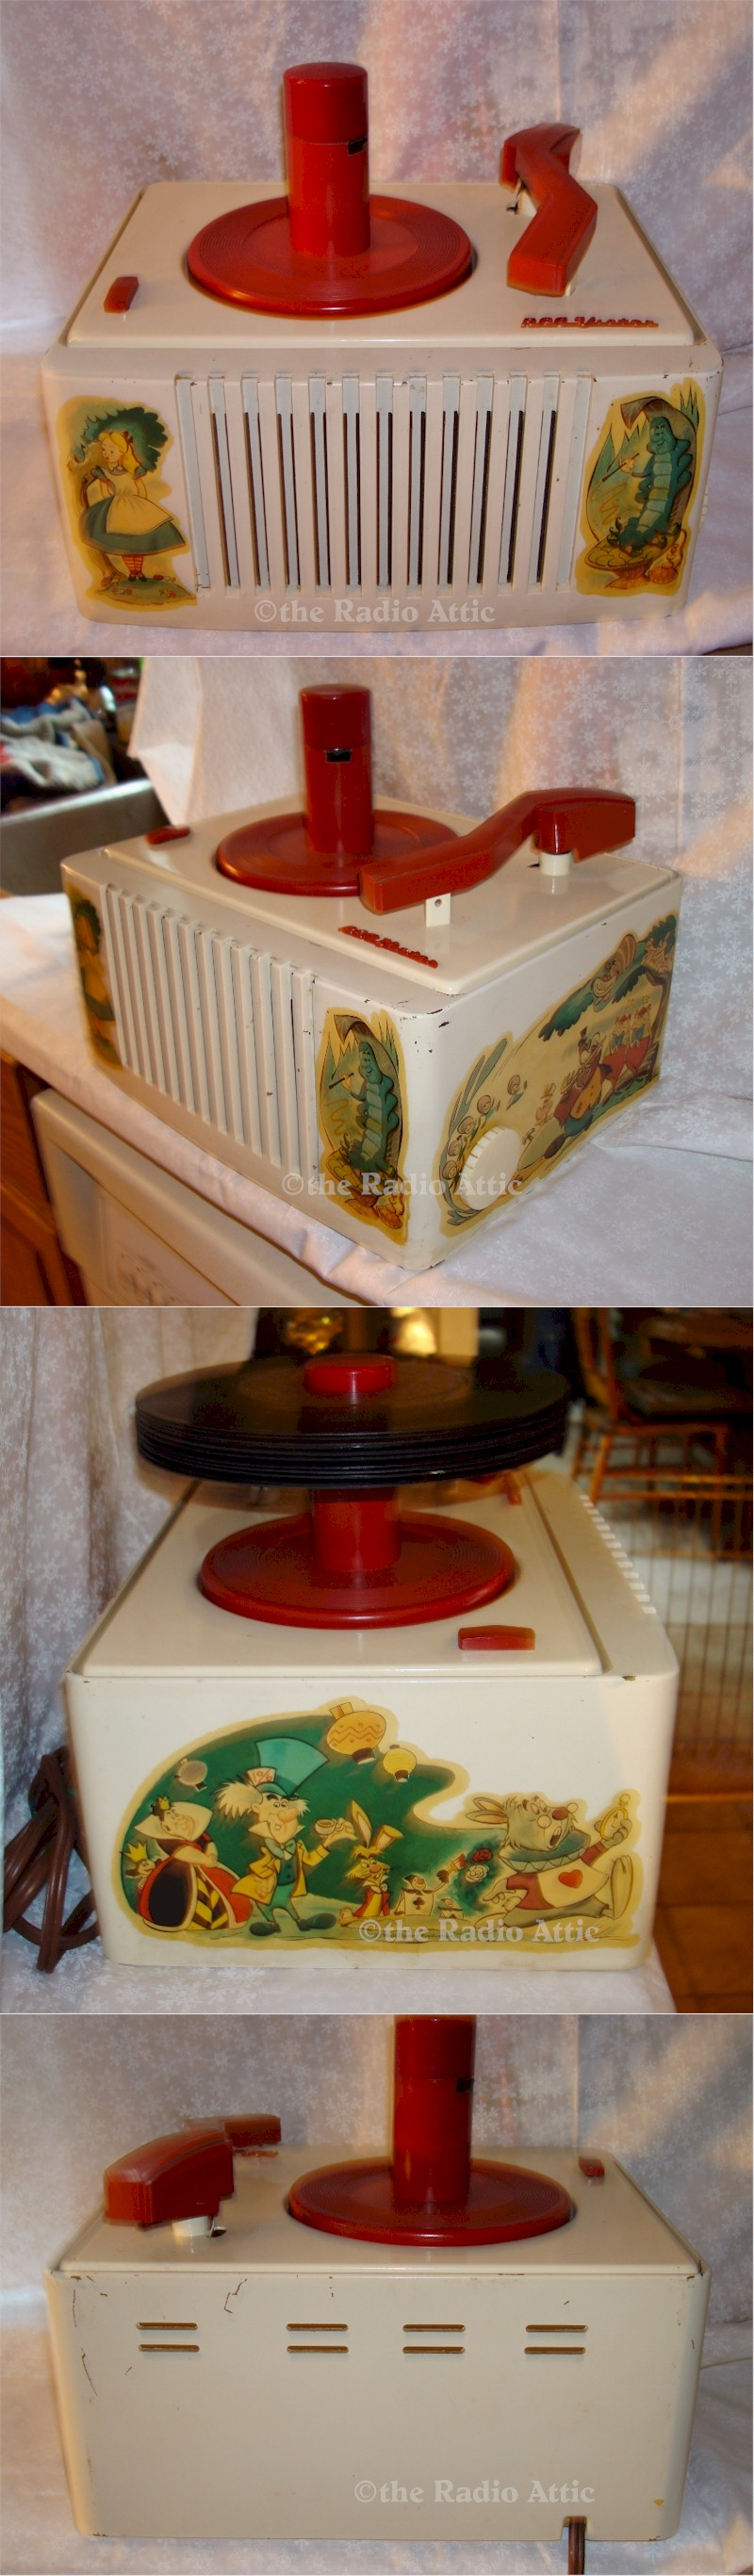 "RCA 45EY-26 ""Alice in Wonderland"" 45rpm Phonograph (1951)"